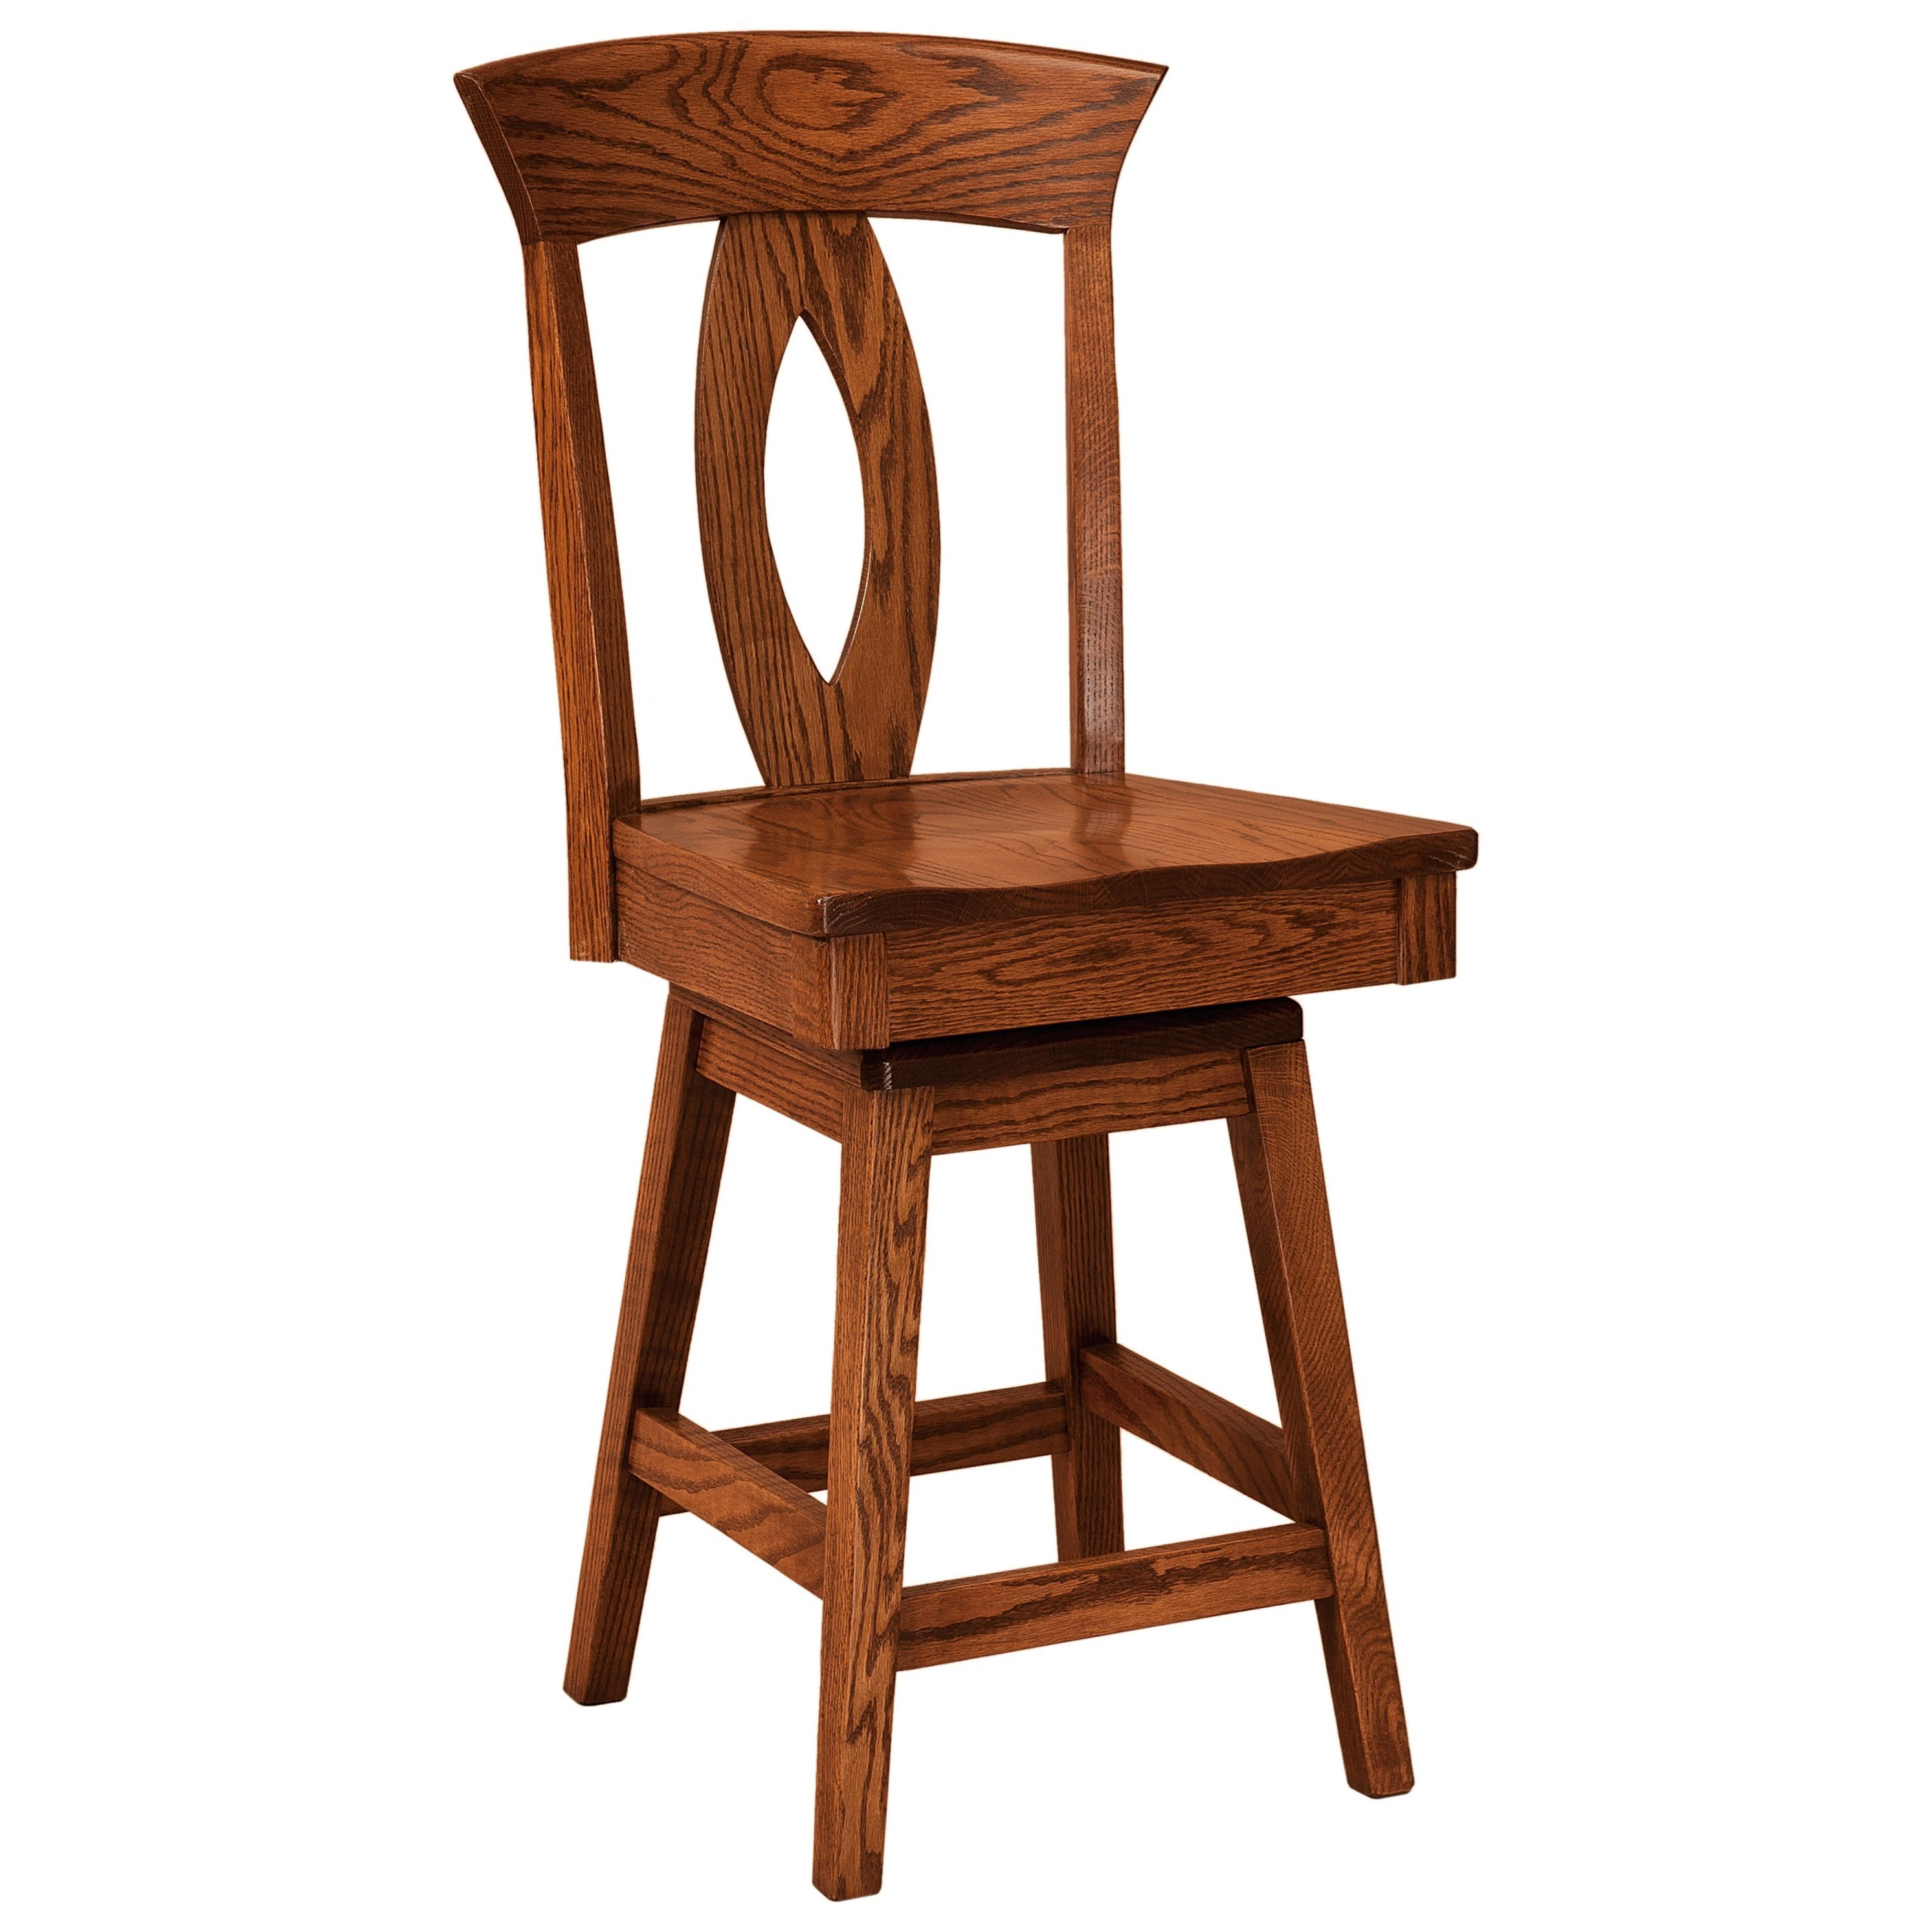 Brookfield Swivel Bar Stool - Leather Seat by F&N Woodworking at Mueller Furniture